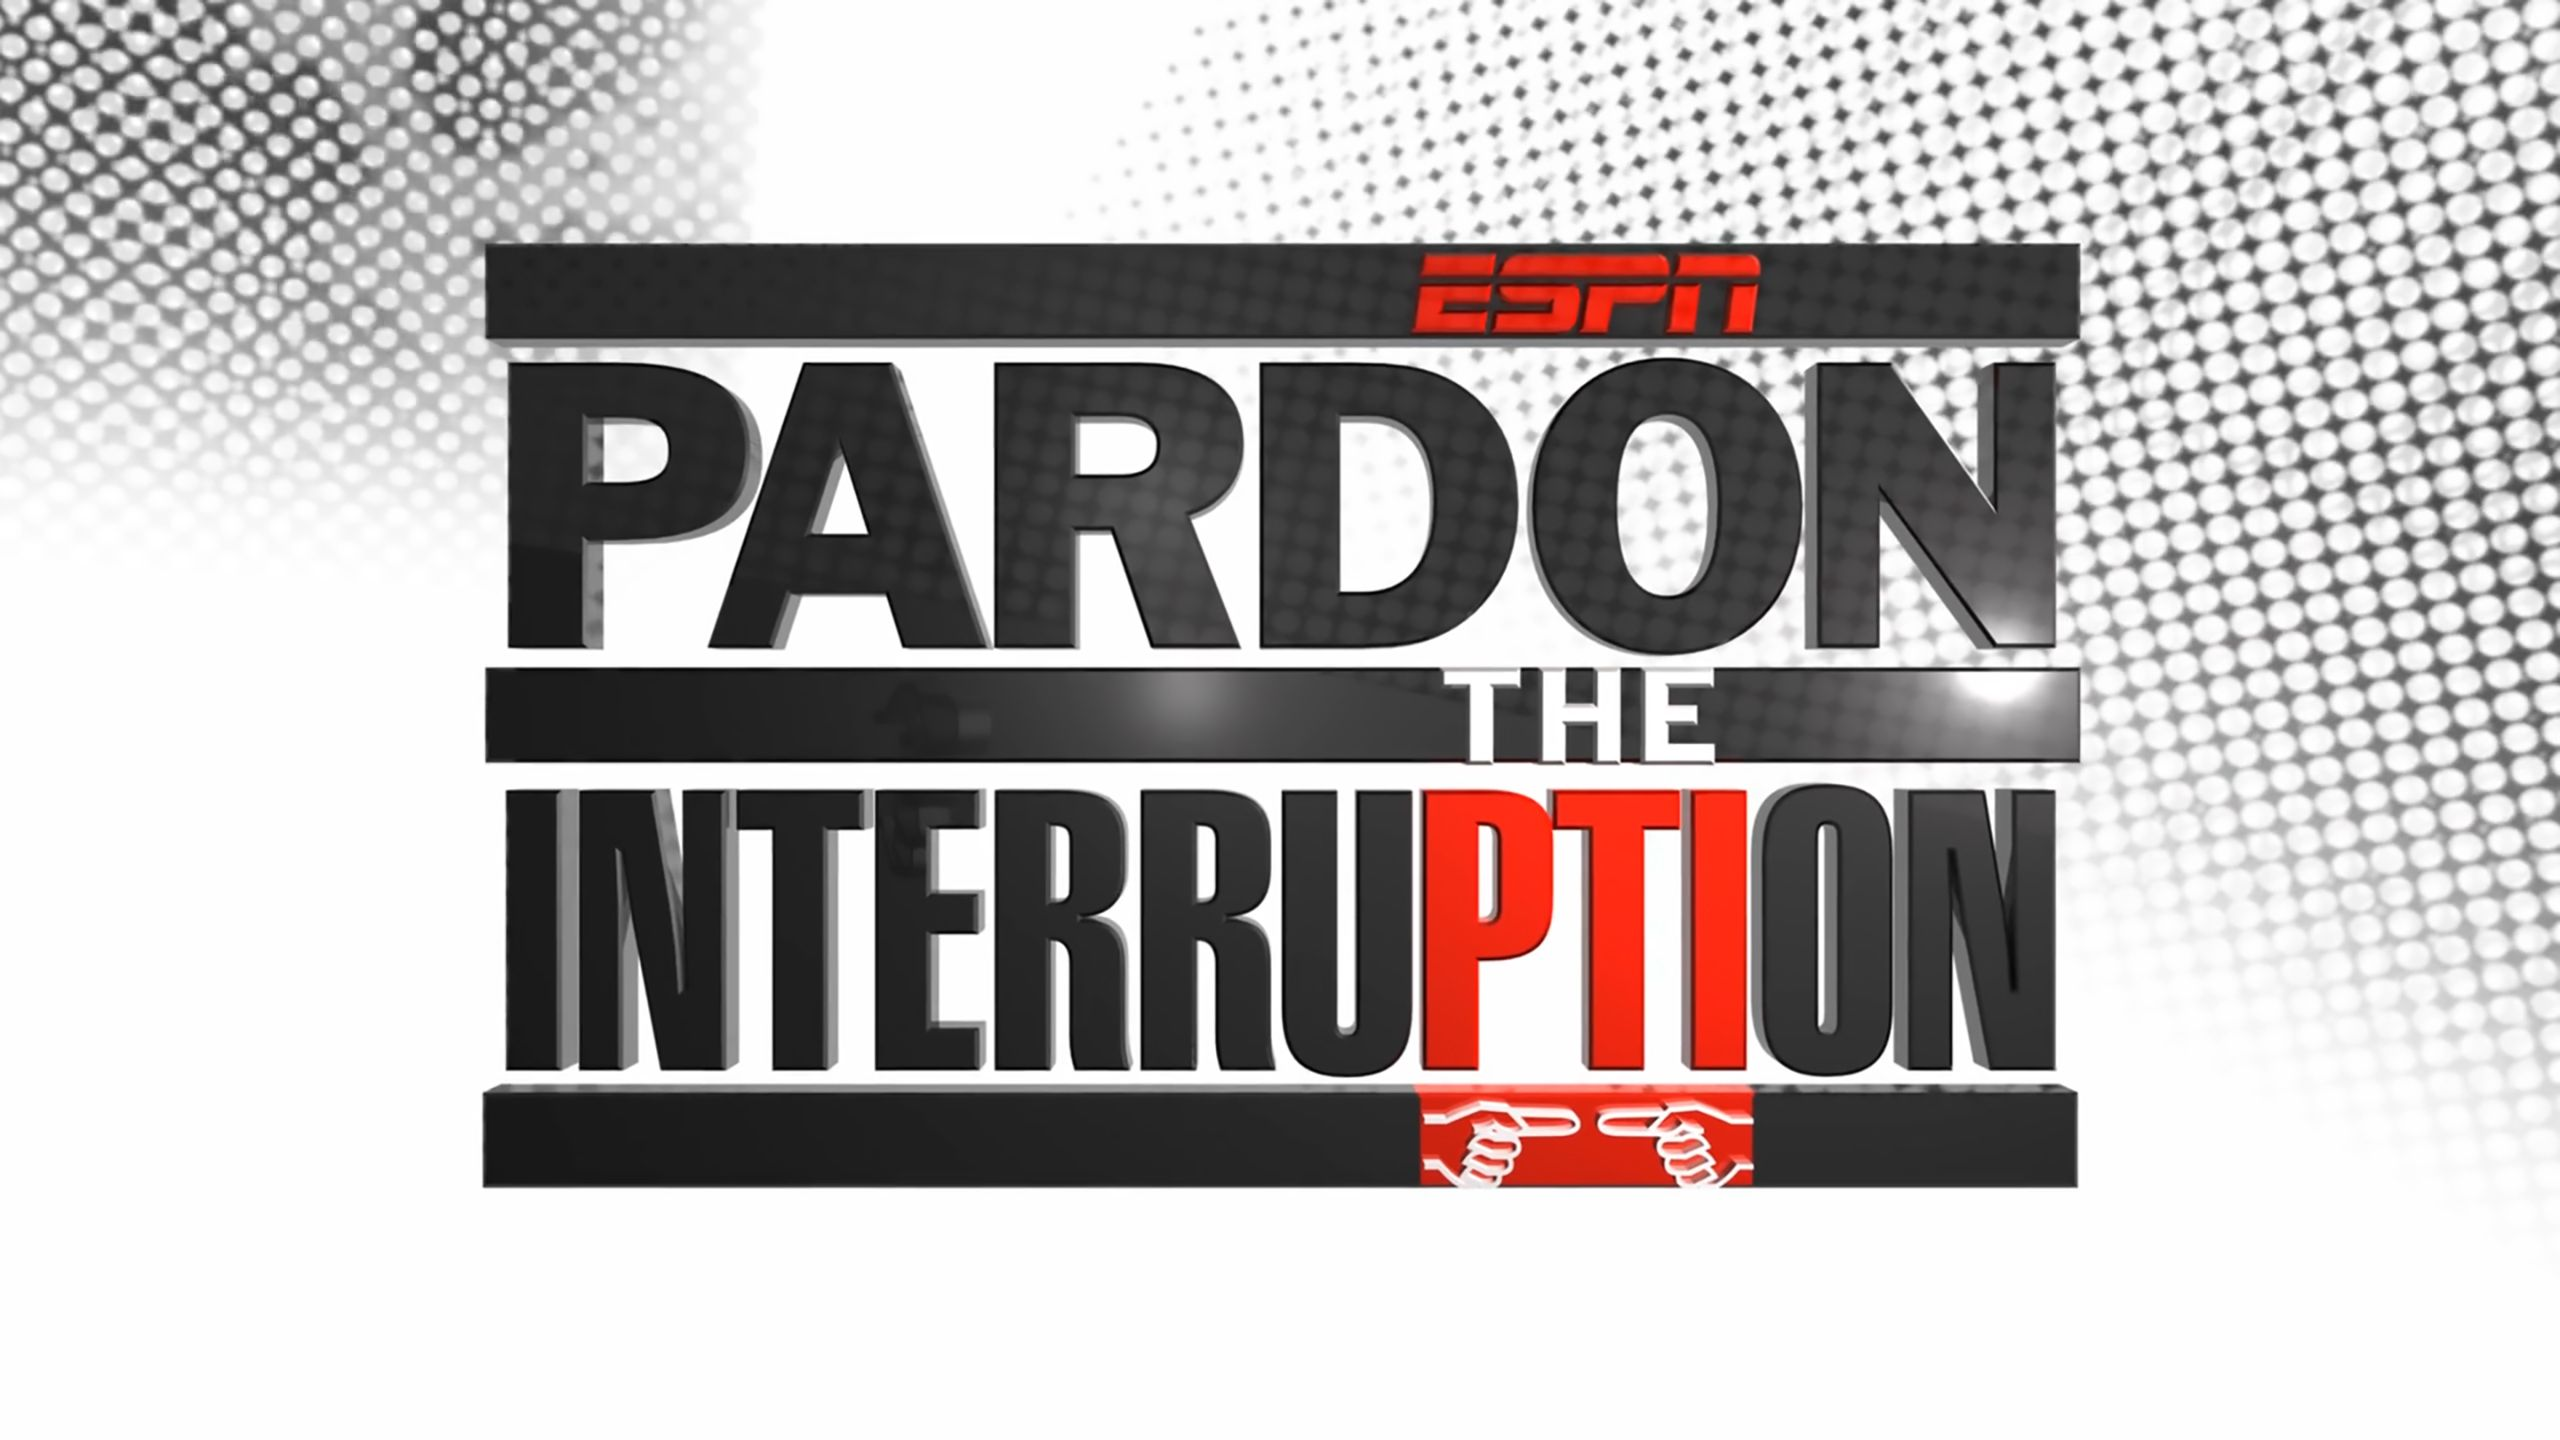 Mon, 3/19 - Pardon The Interruption